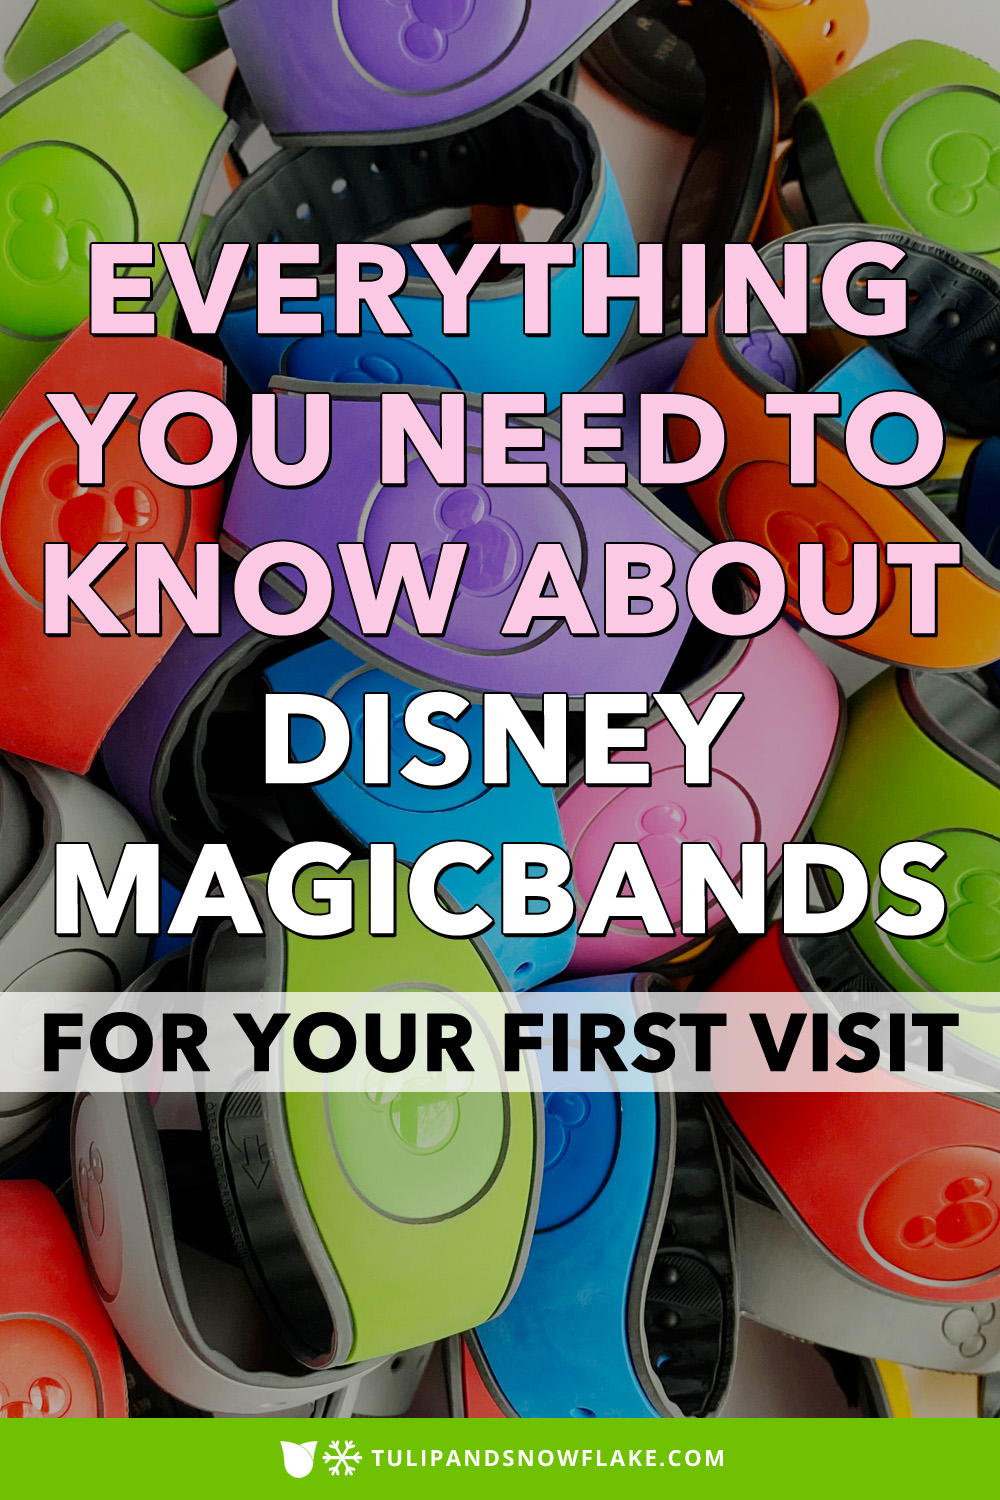 Everything you need to know about Disney MagicBands